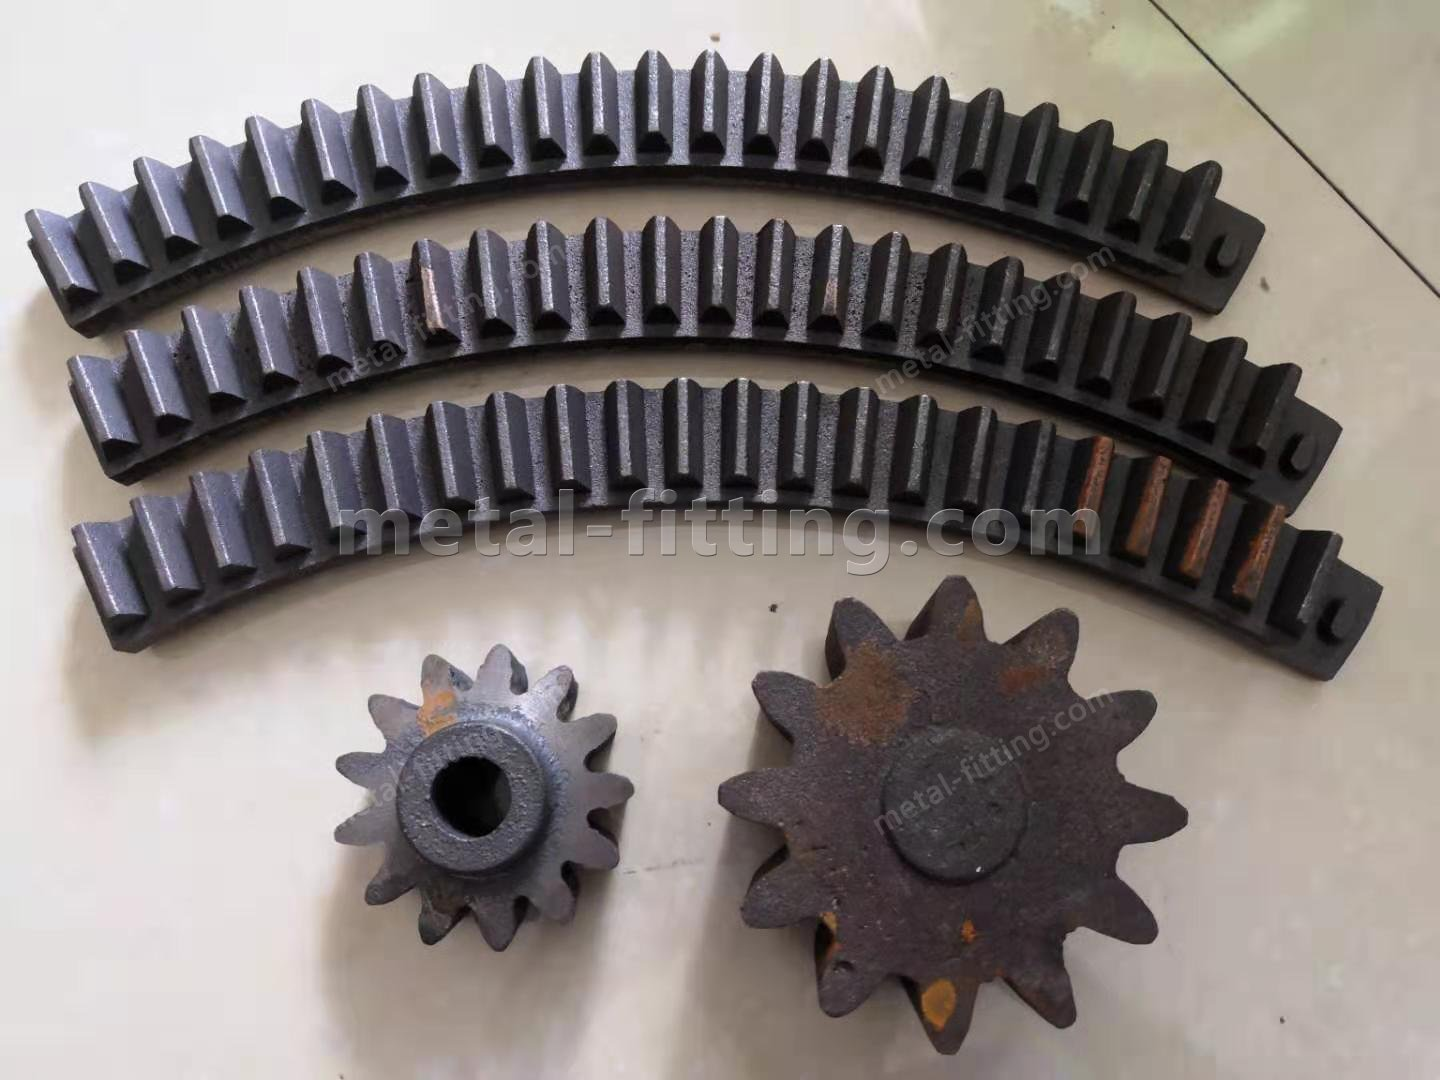 cement mixer cast iron ring gear,metal concrete mixer gear and pinion set ,spinning gear ring-cast mixer ring gear (1)